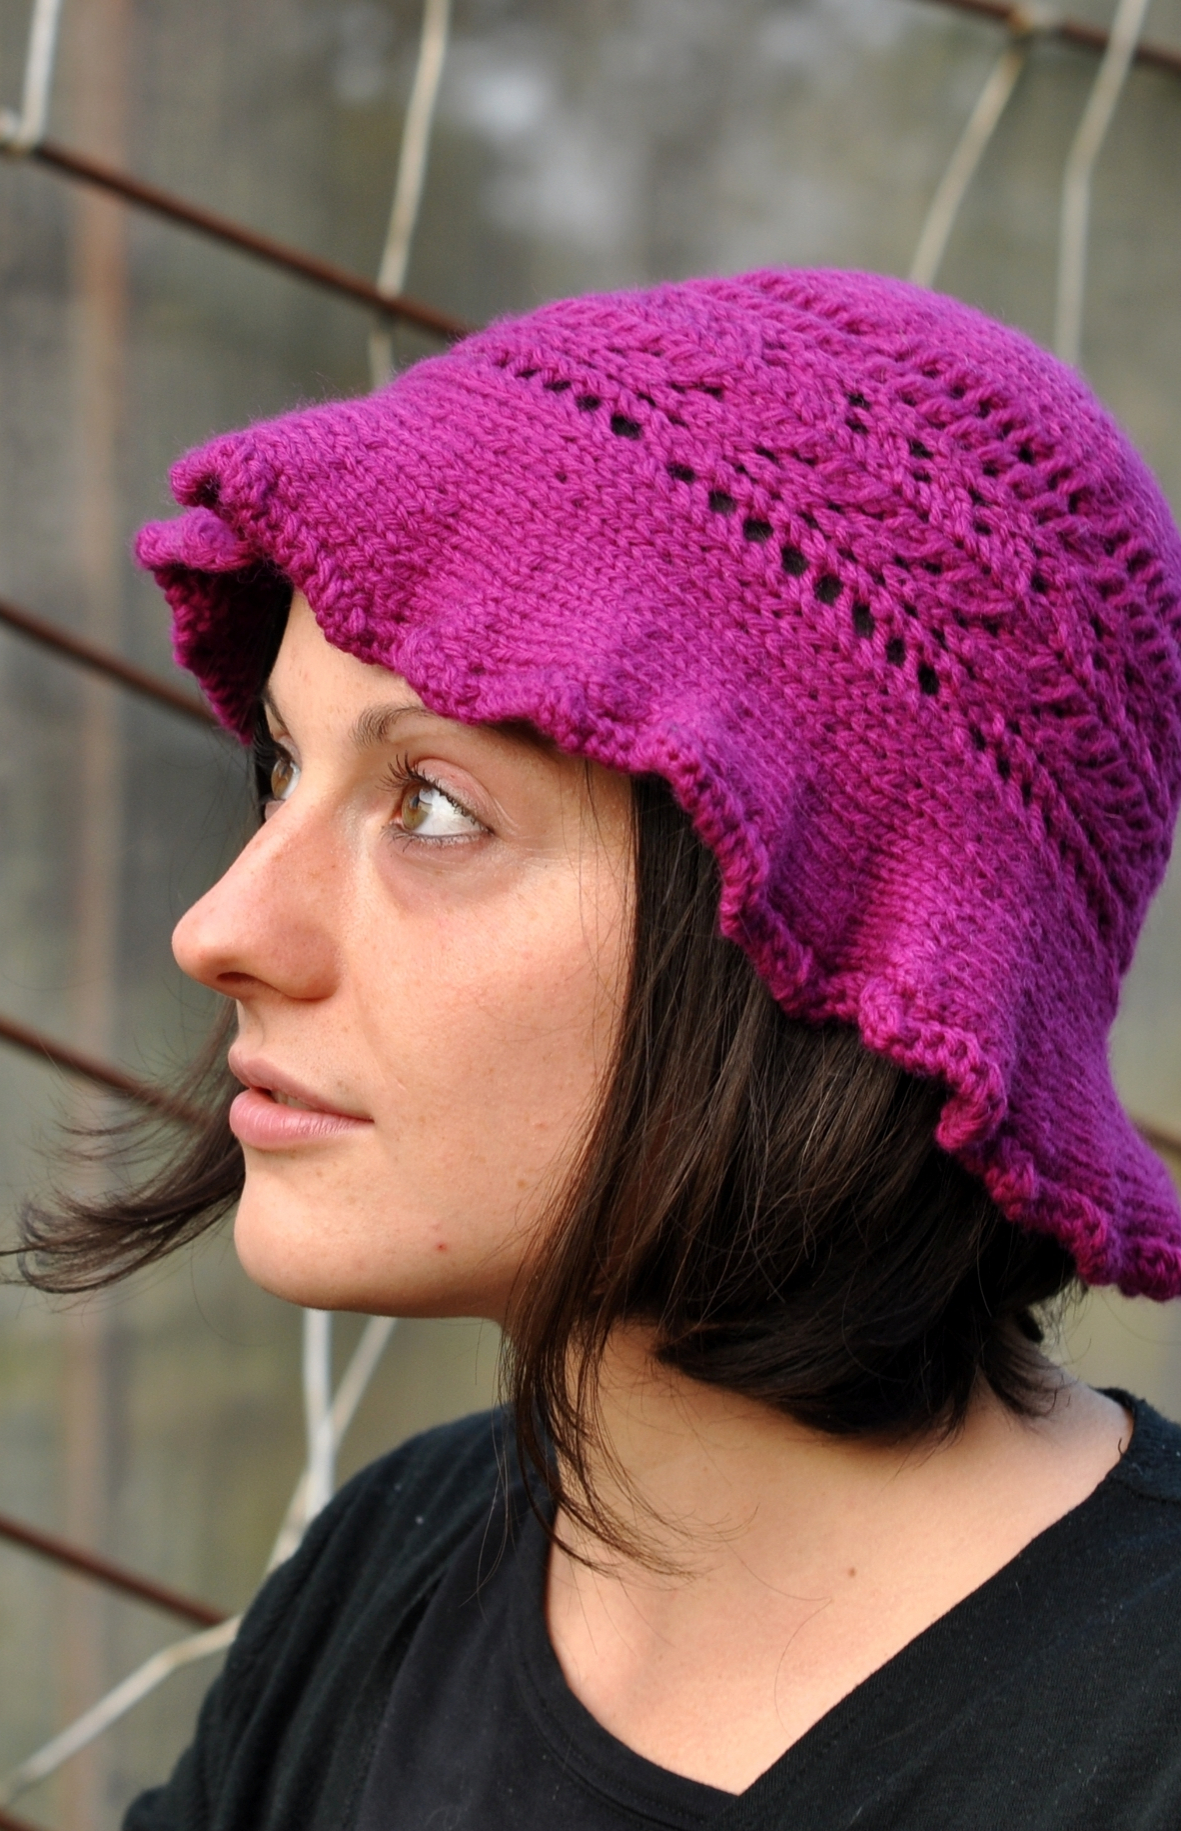 Molly sideways knit brimmed lace summer Hat knitting pattern